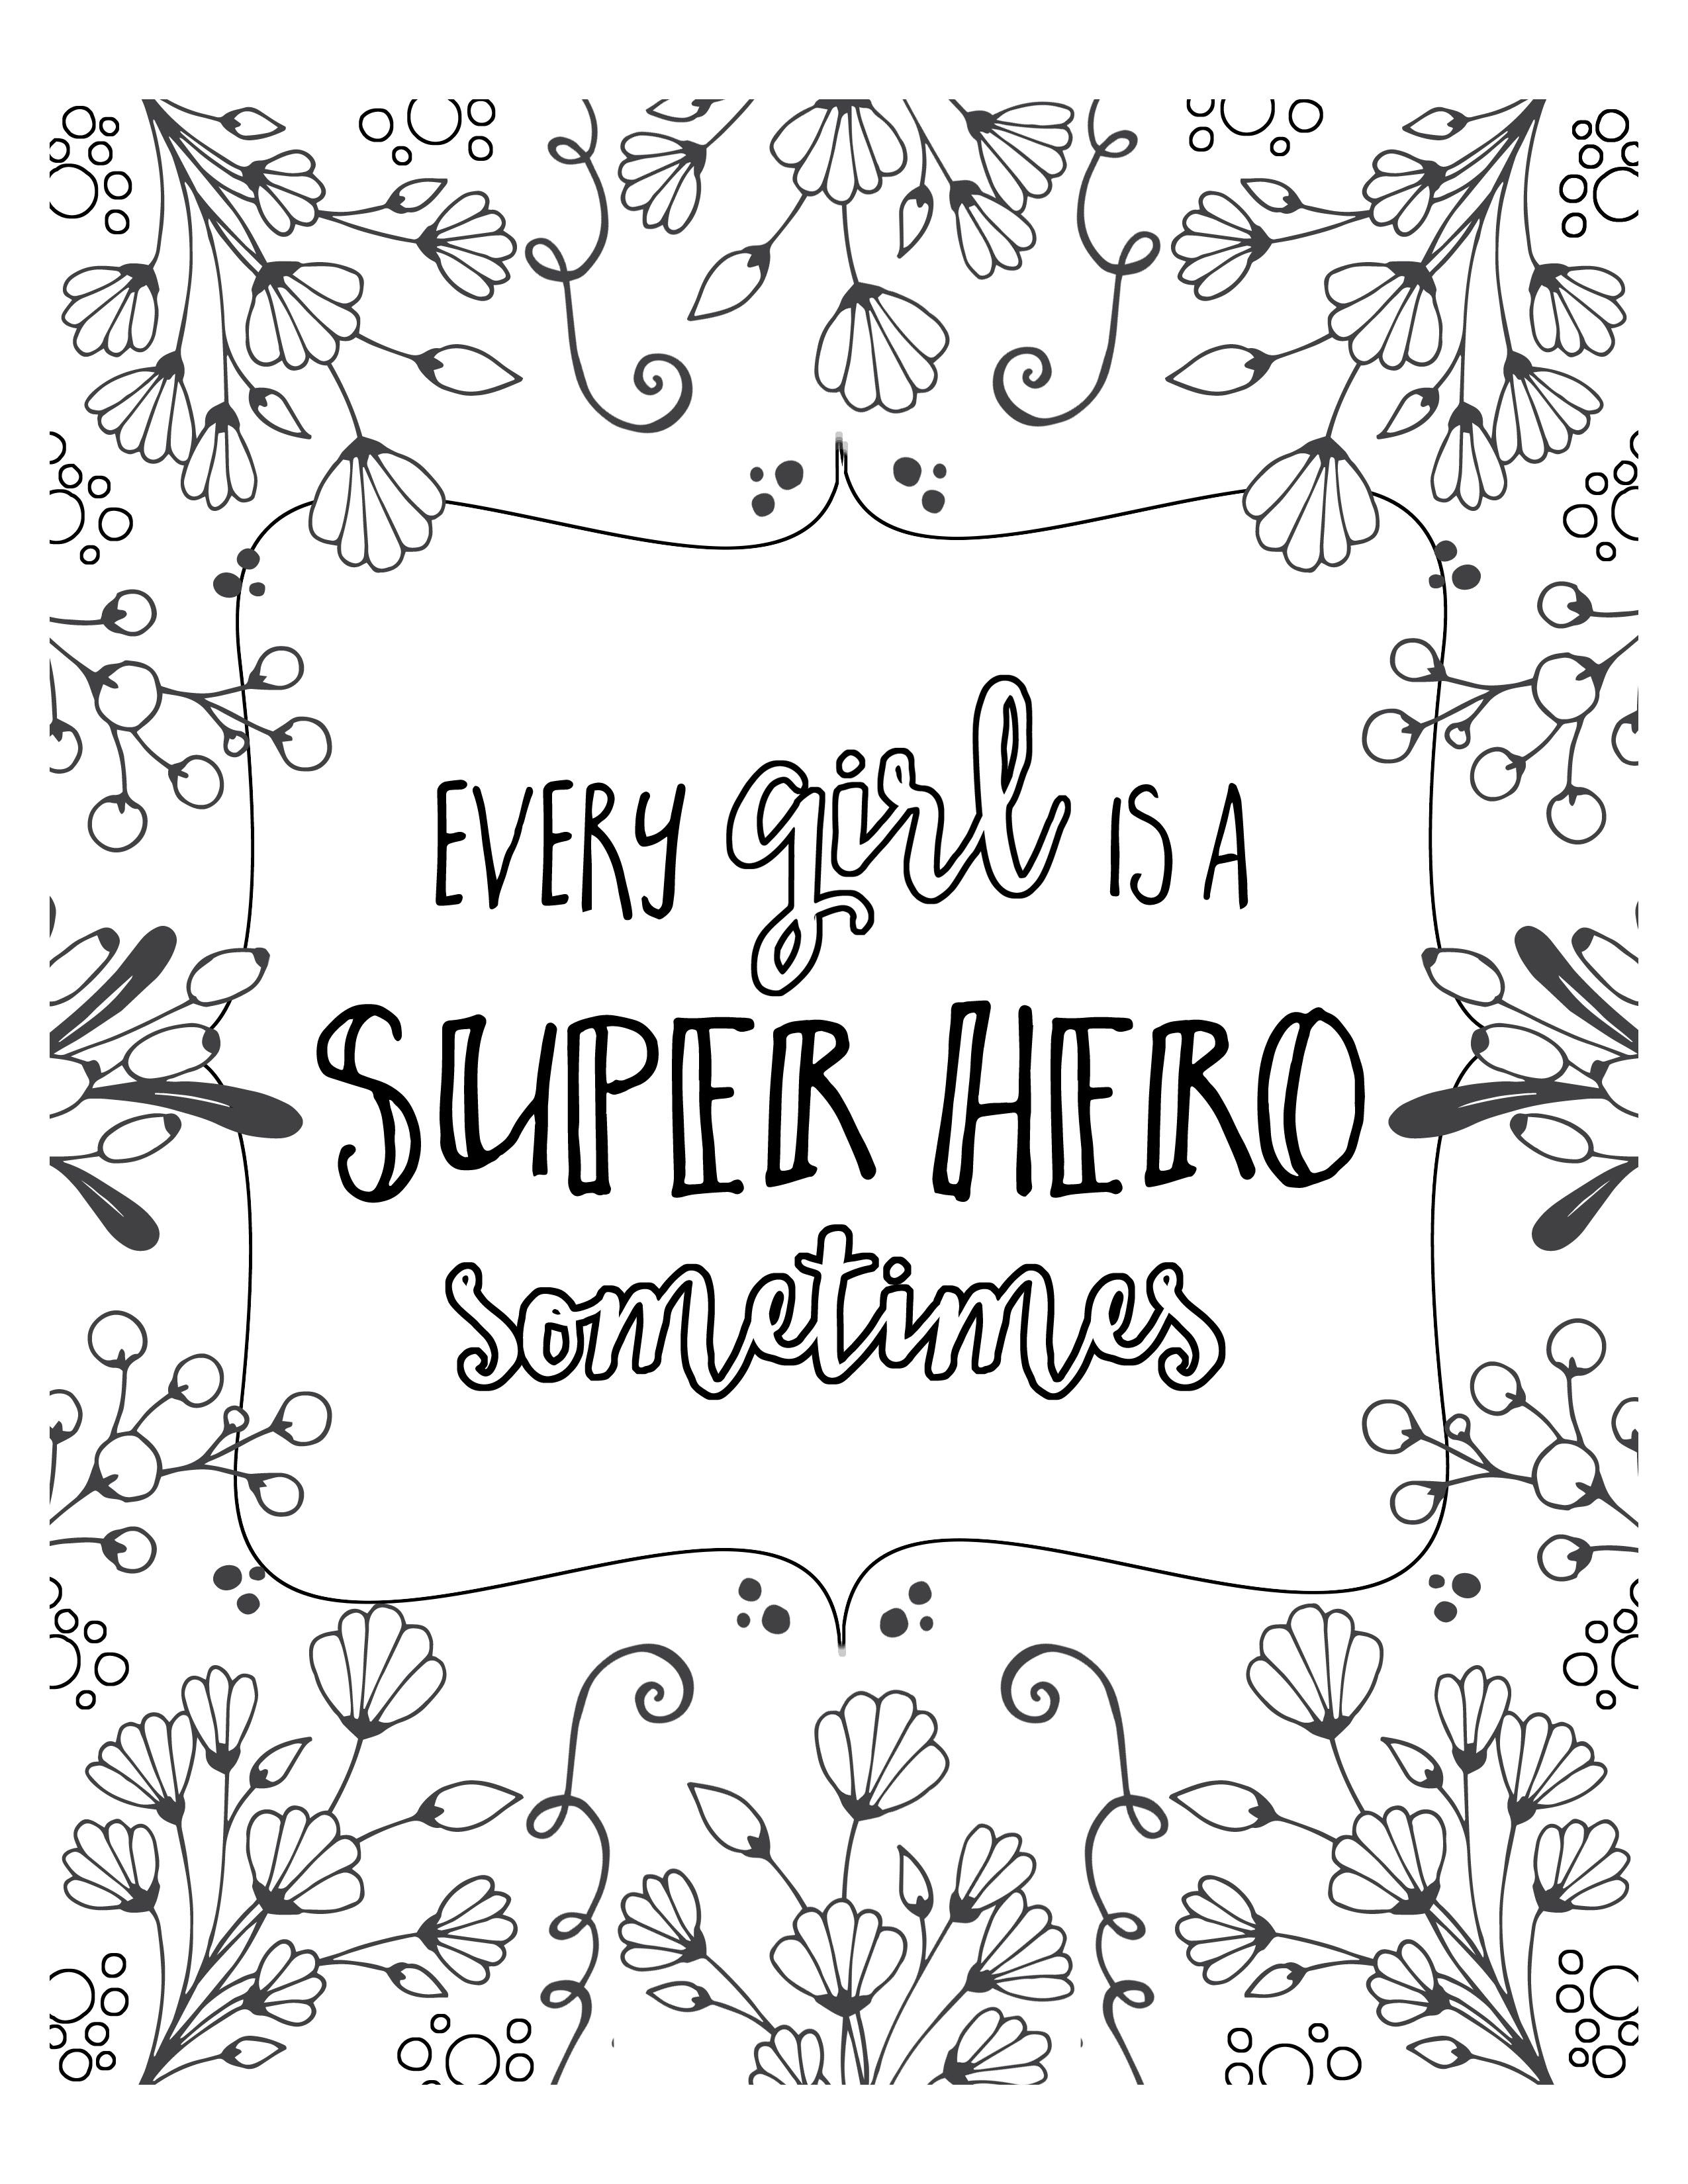 Free Super Hero Coloring Pages   Lil' Luna   Coloring Pages